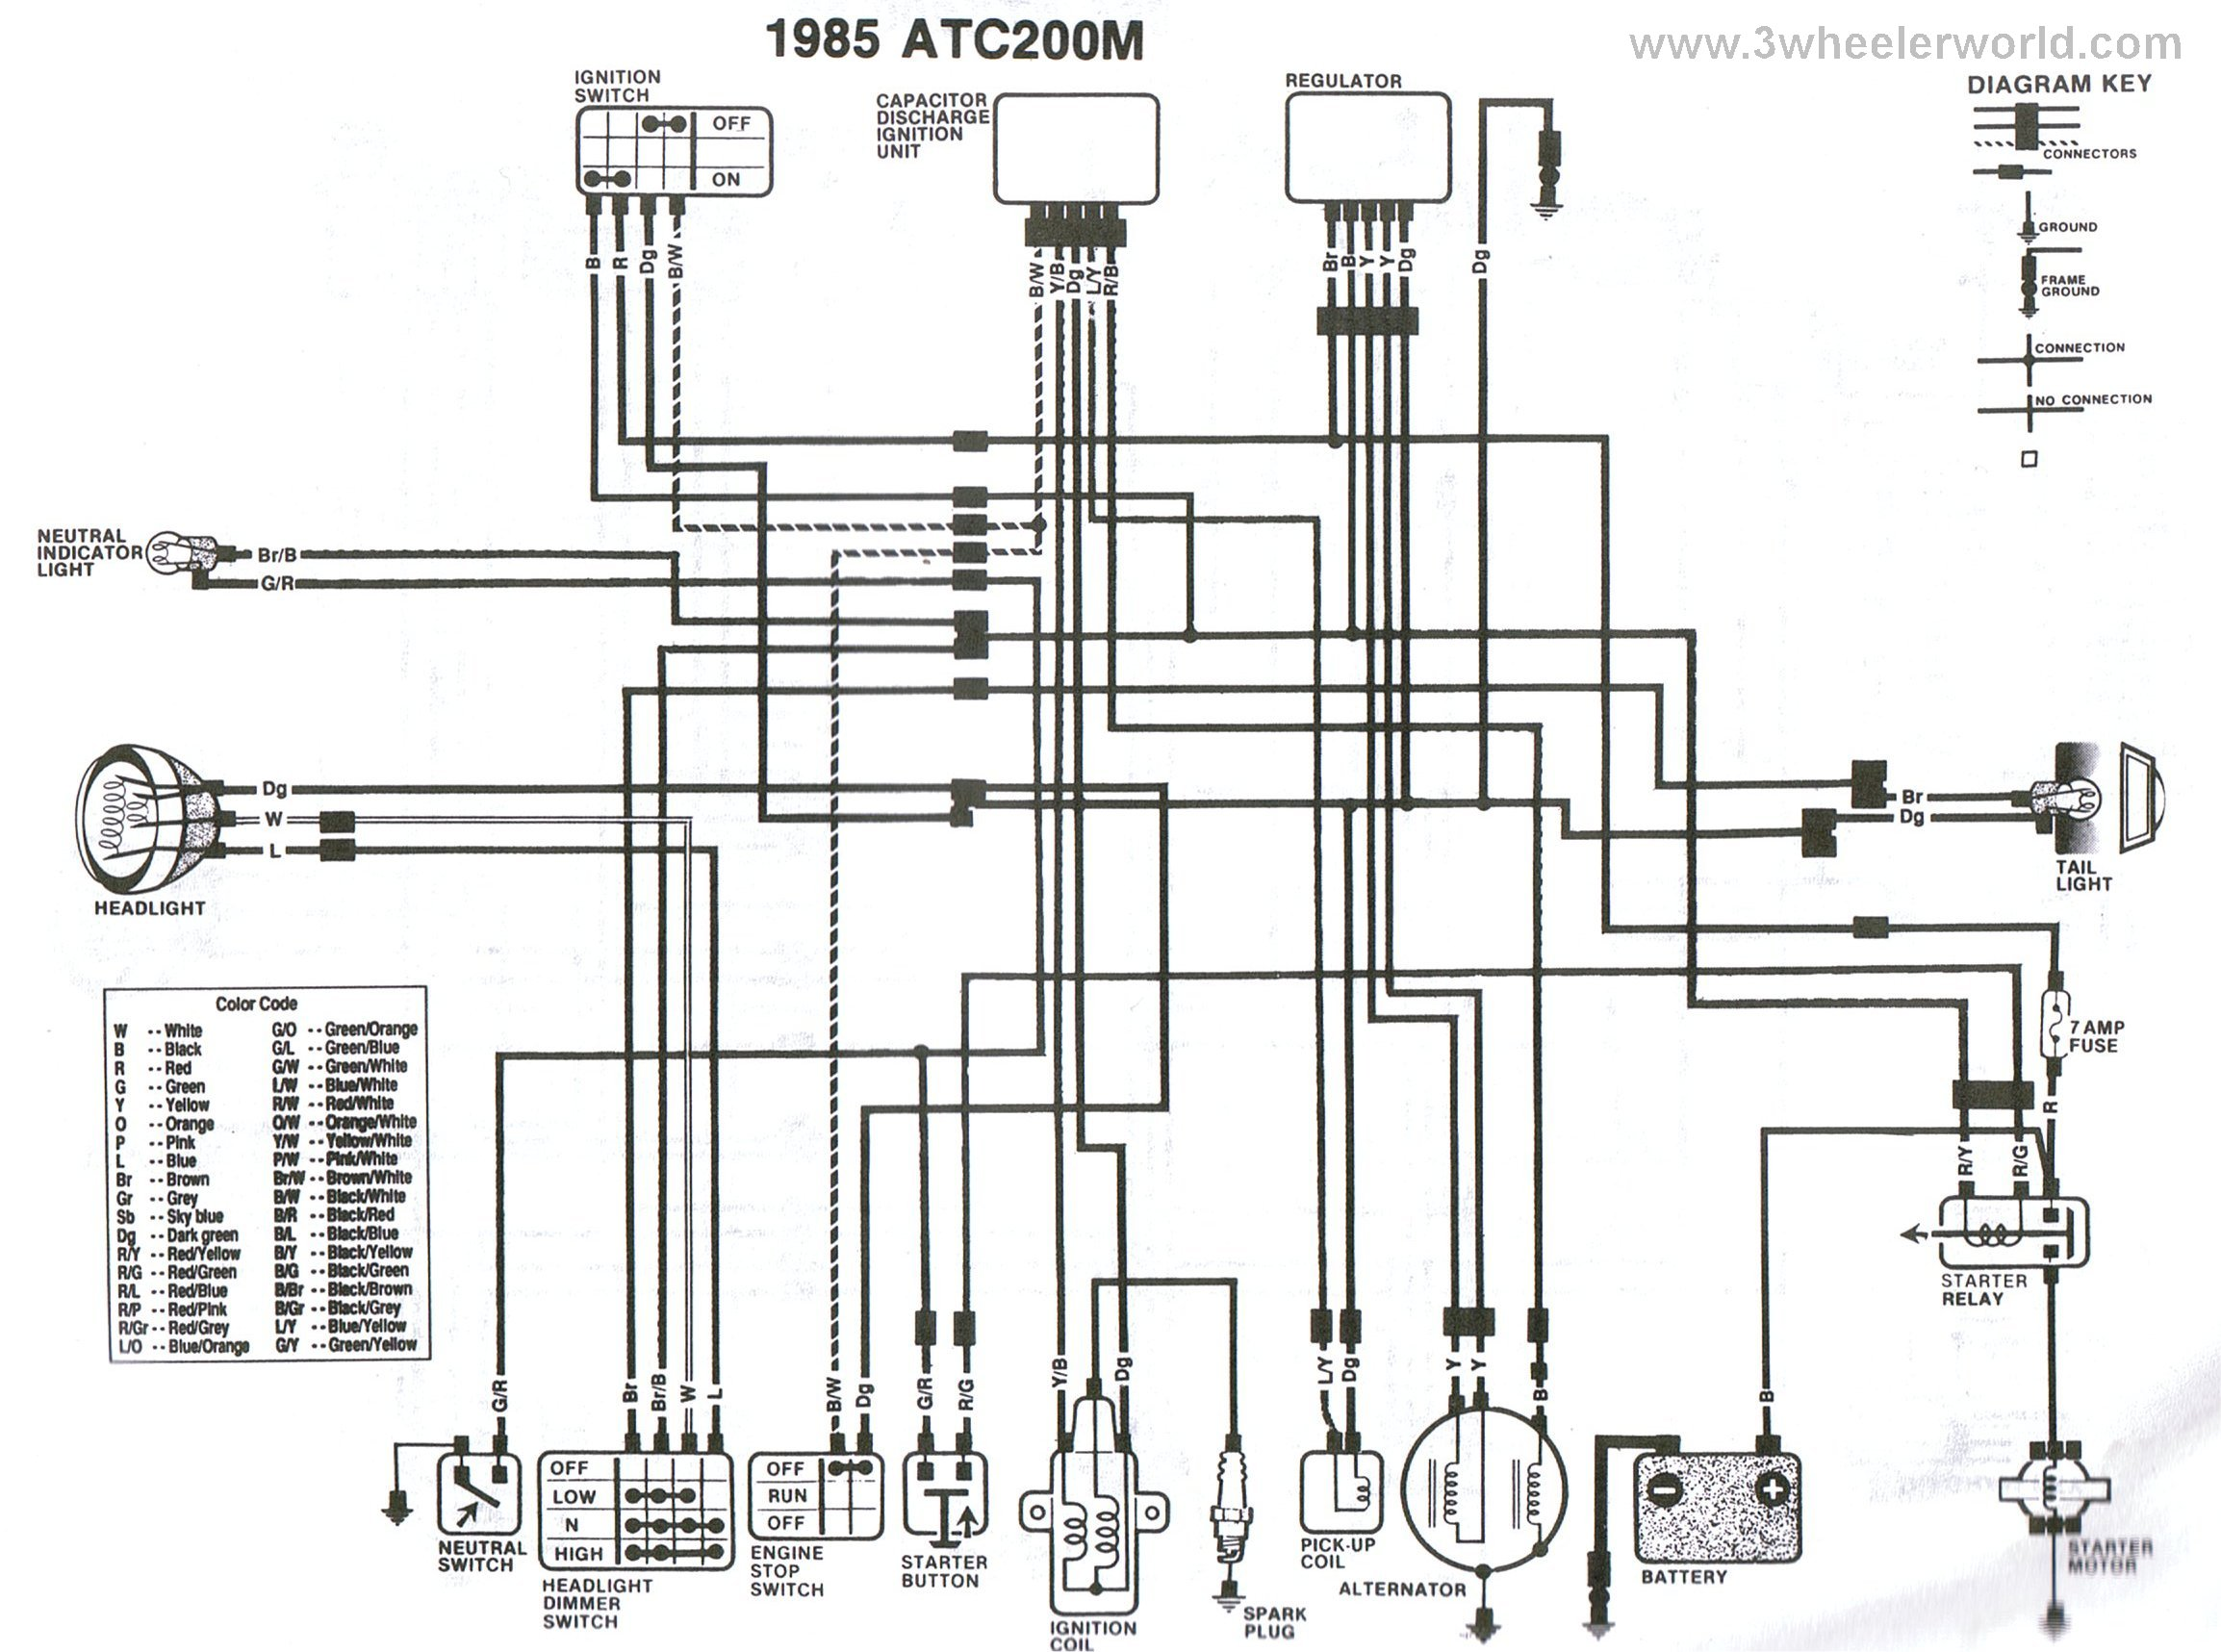 2001 Honda 400Ex Wiring Diagram from static-assets.imageservice.cloud